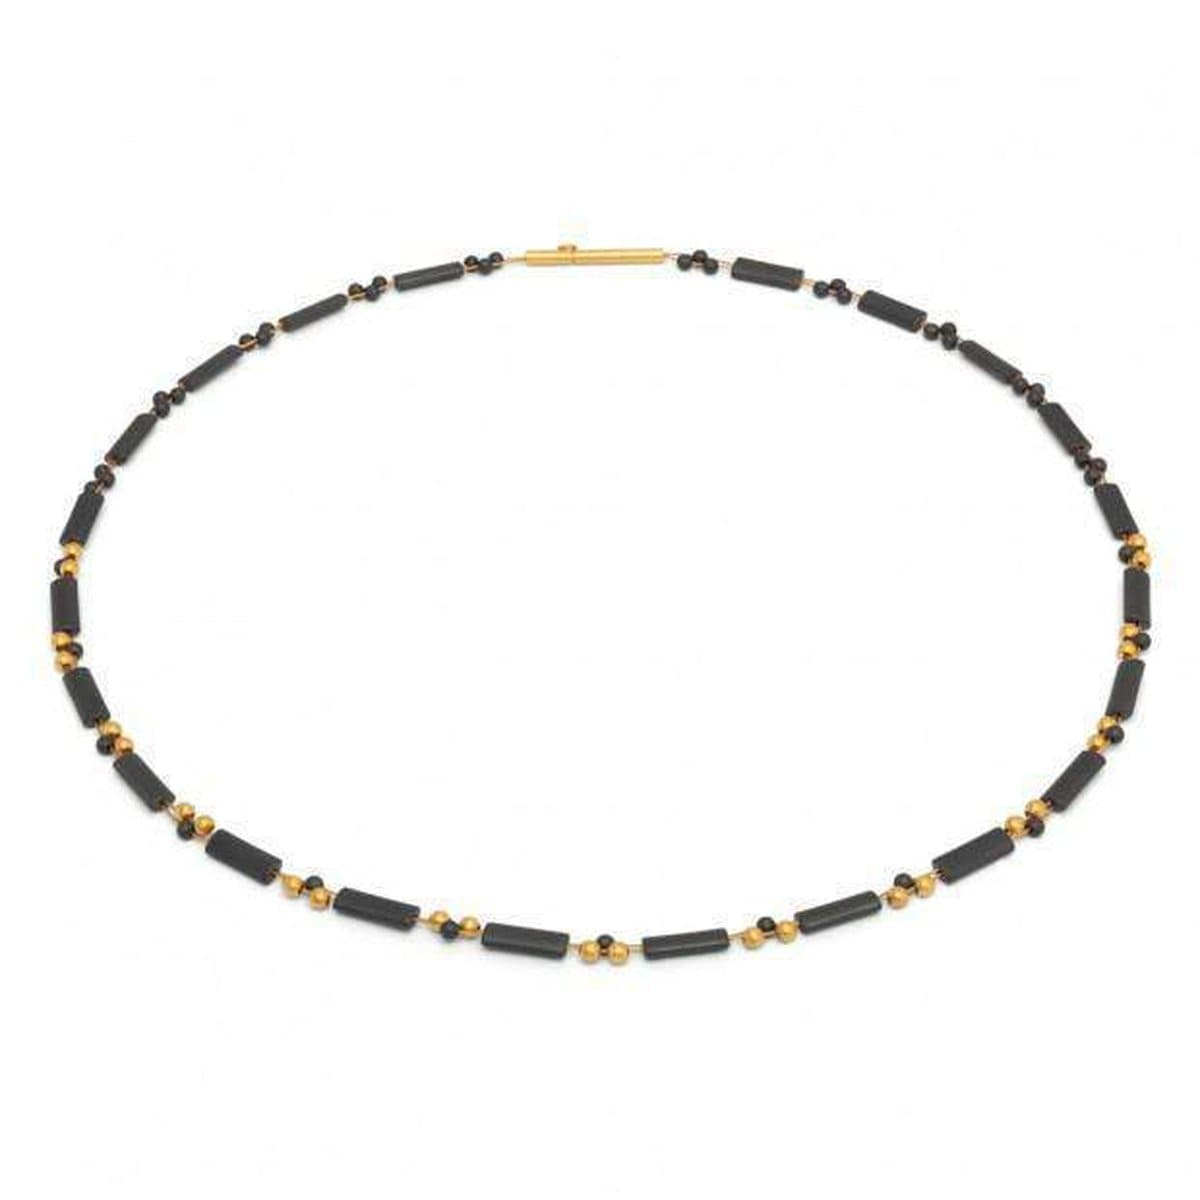 Rigoletti Hematine Necklace - 85216276